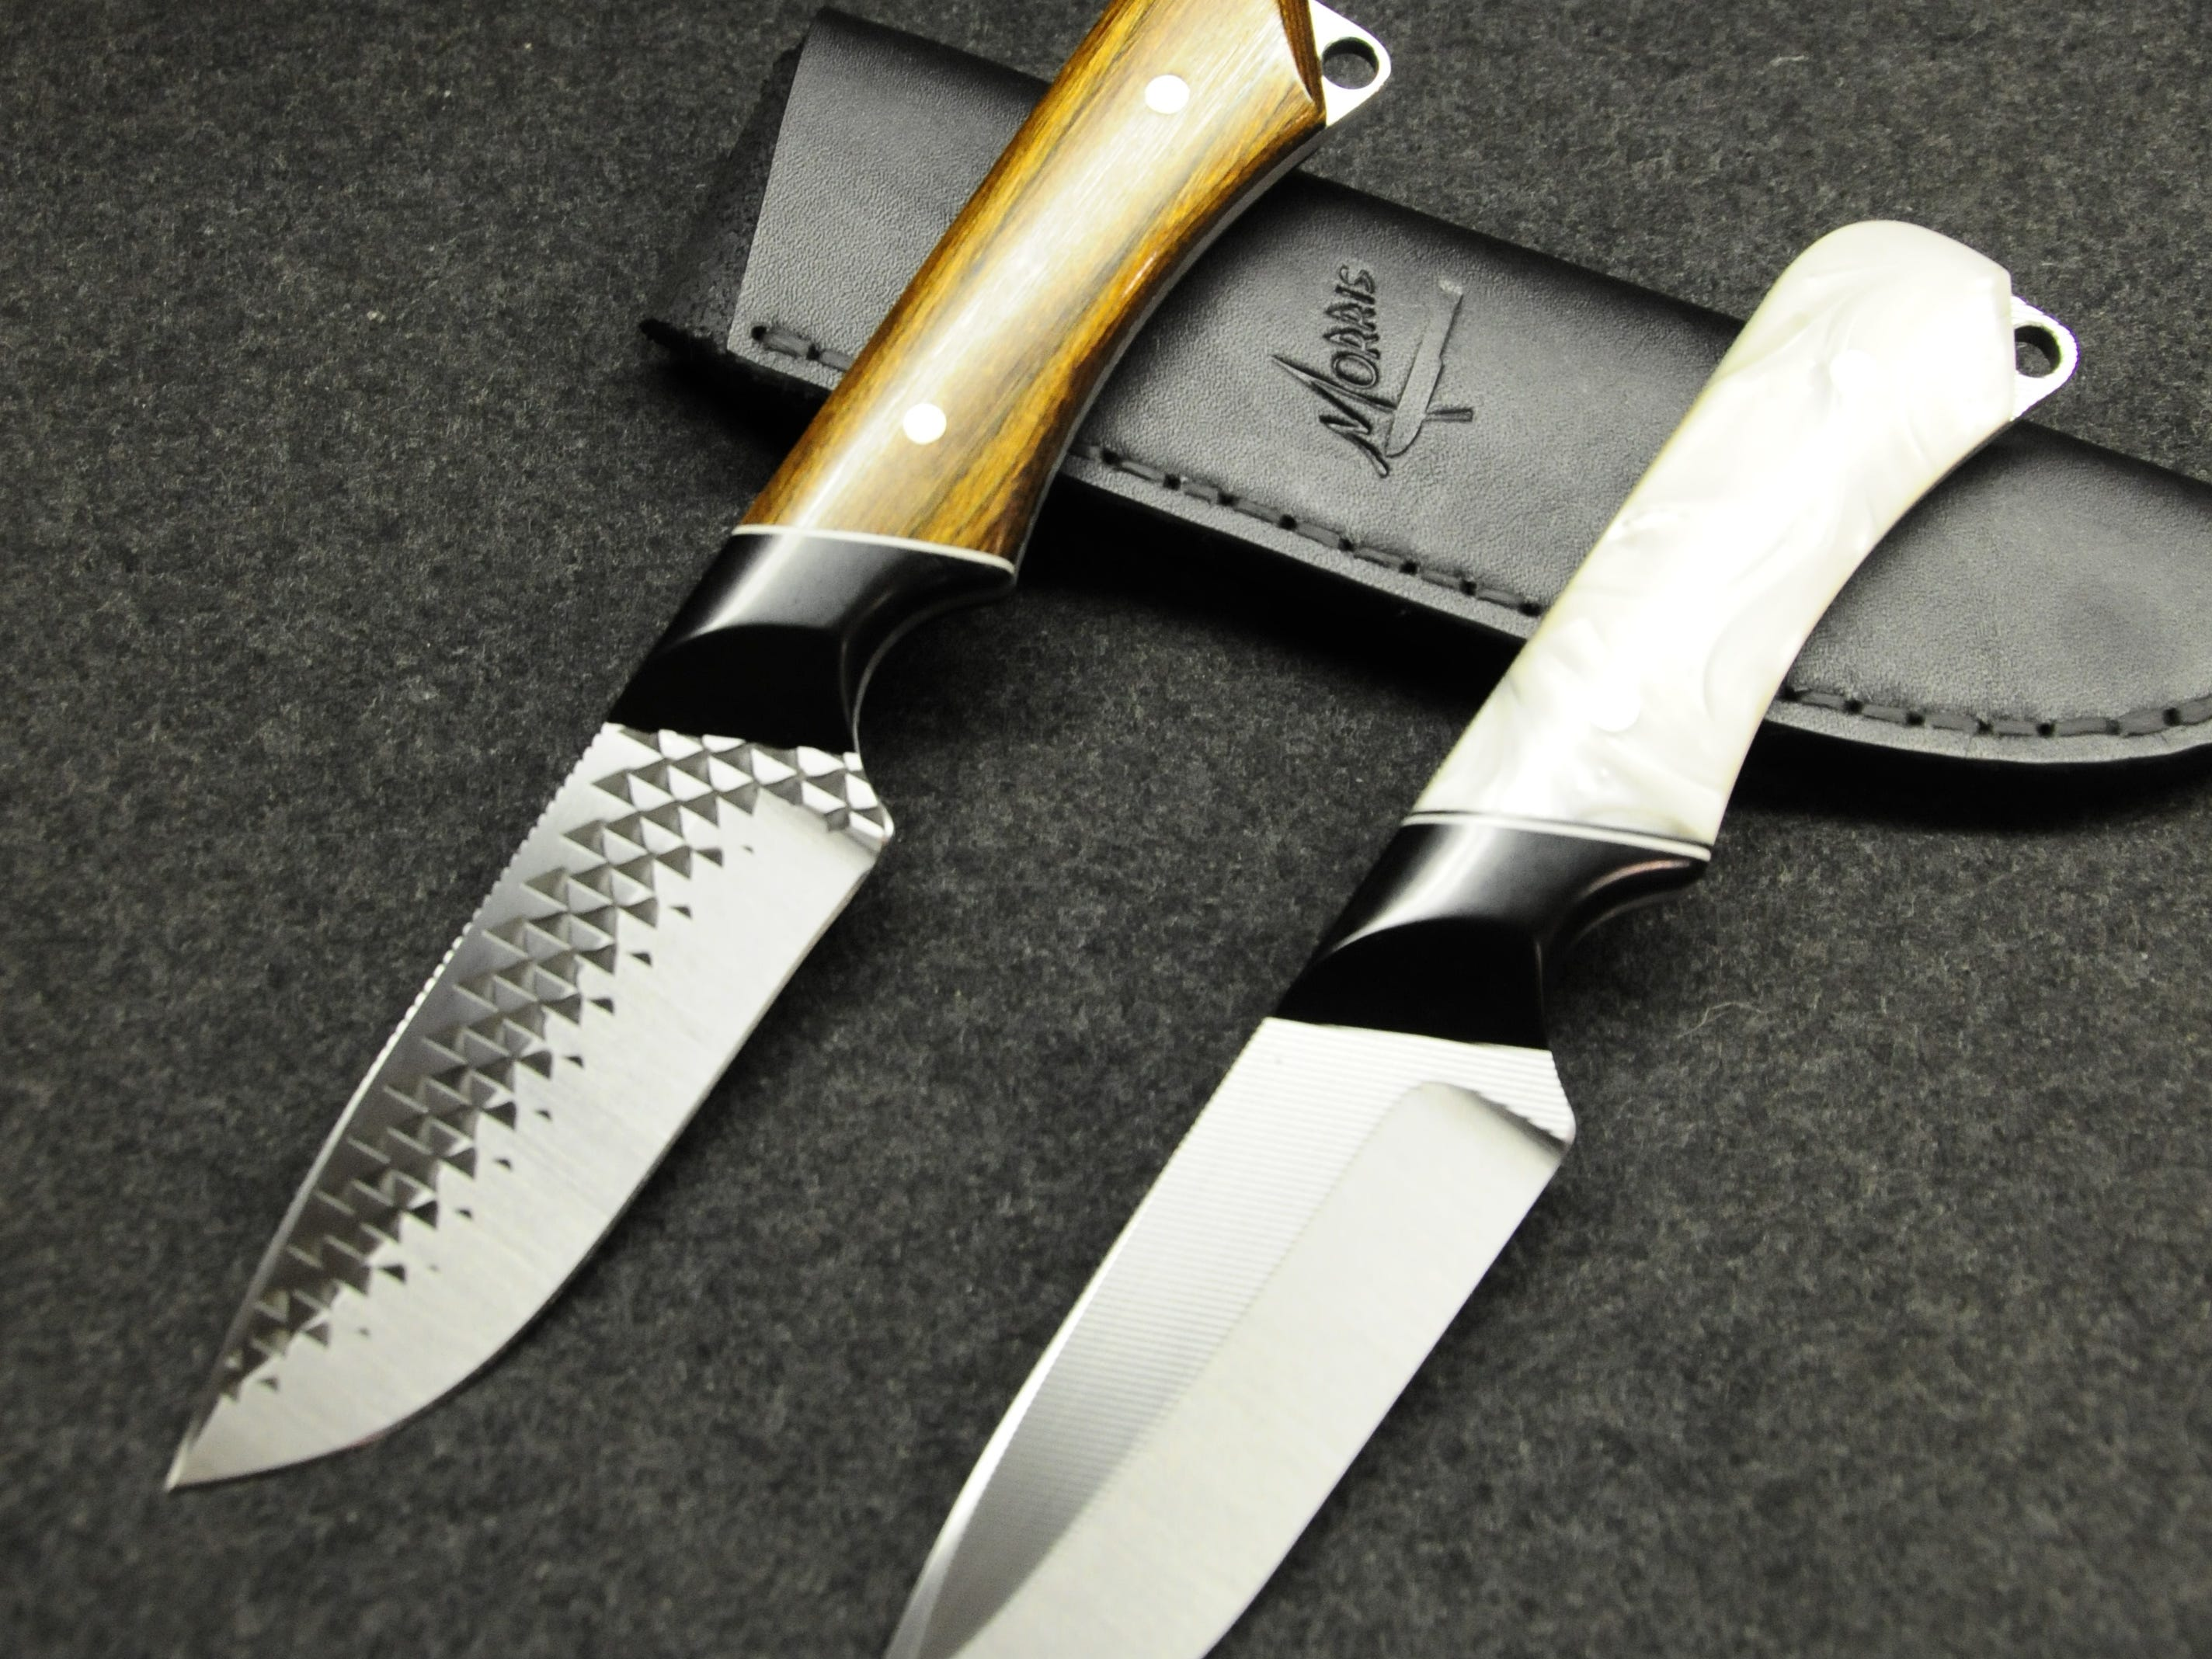 Michael Morris makes hunting knives with a distinctive diamond pattern.